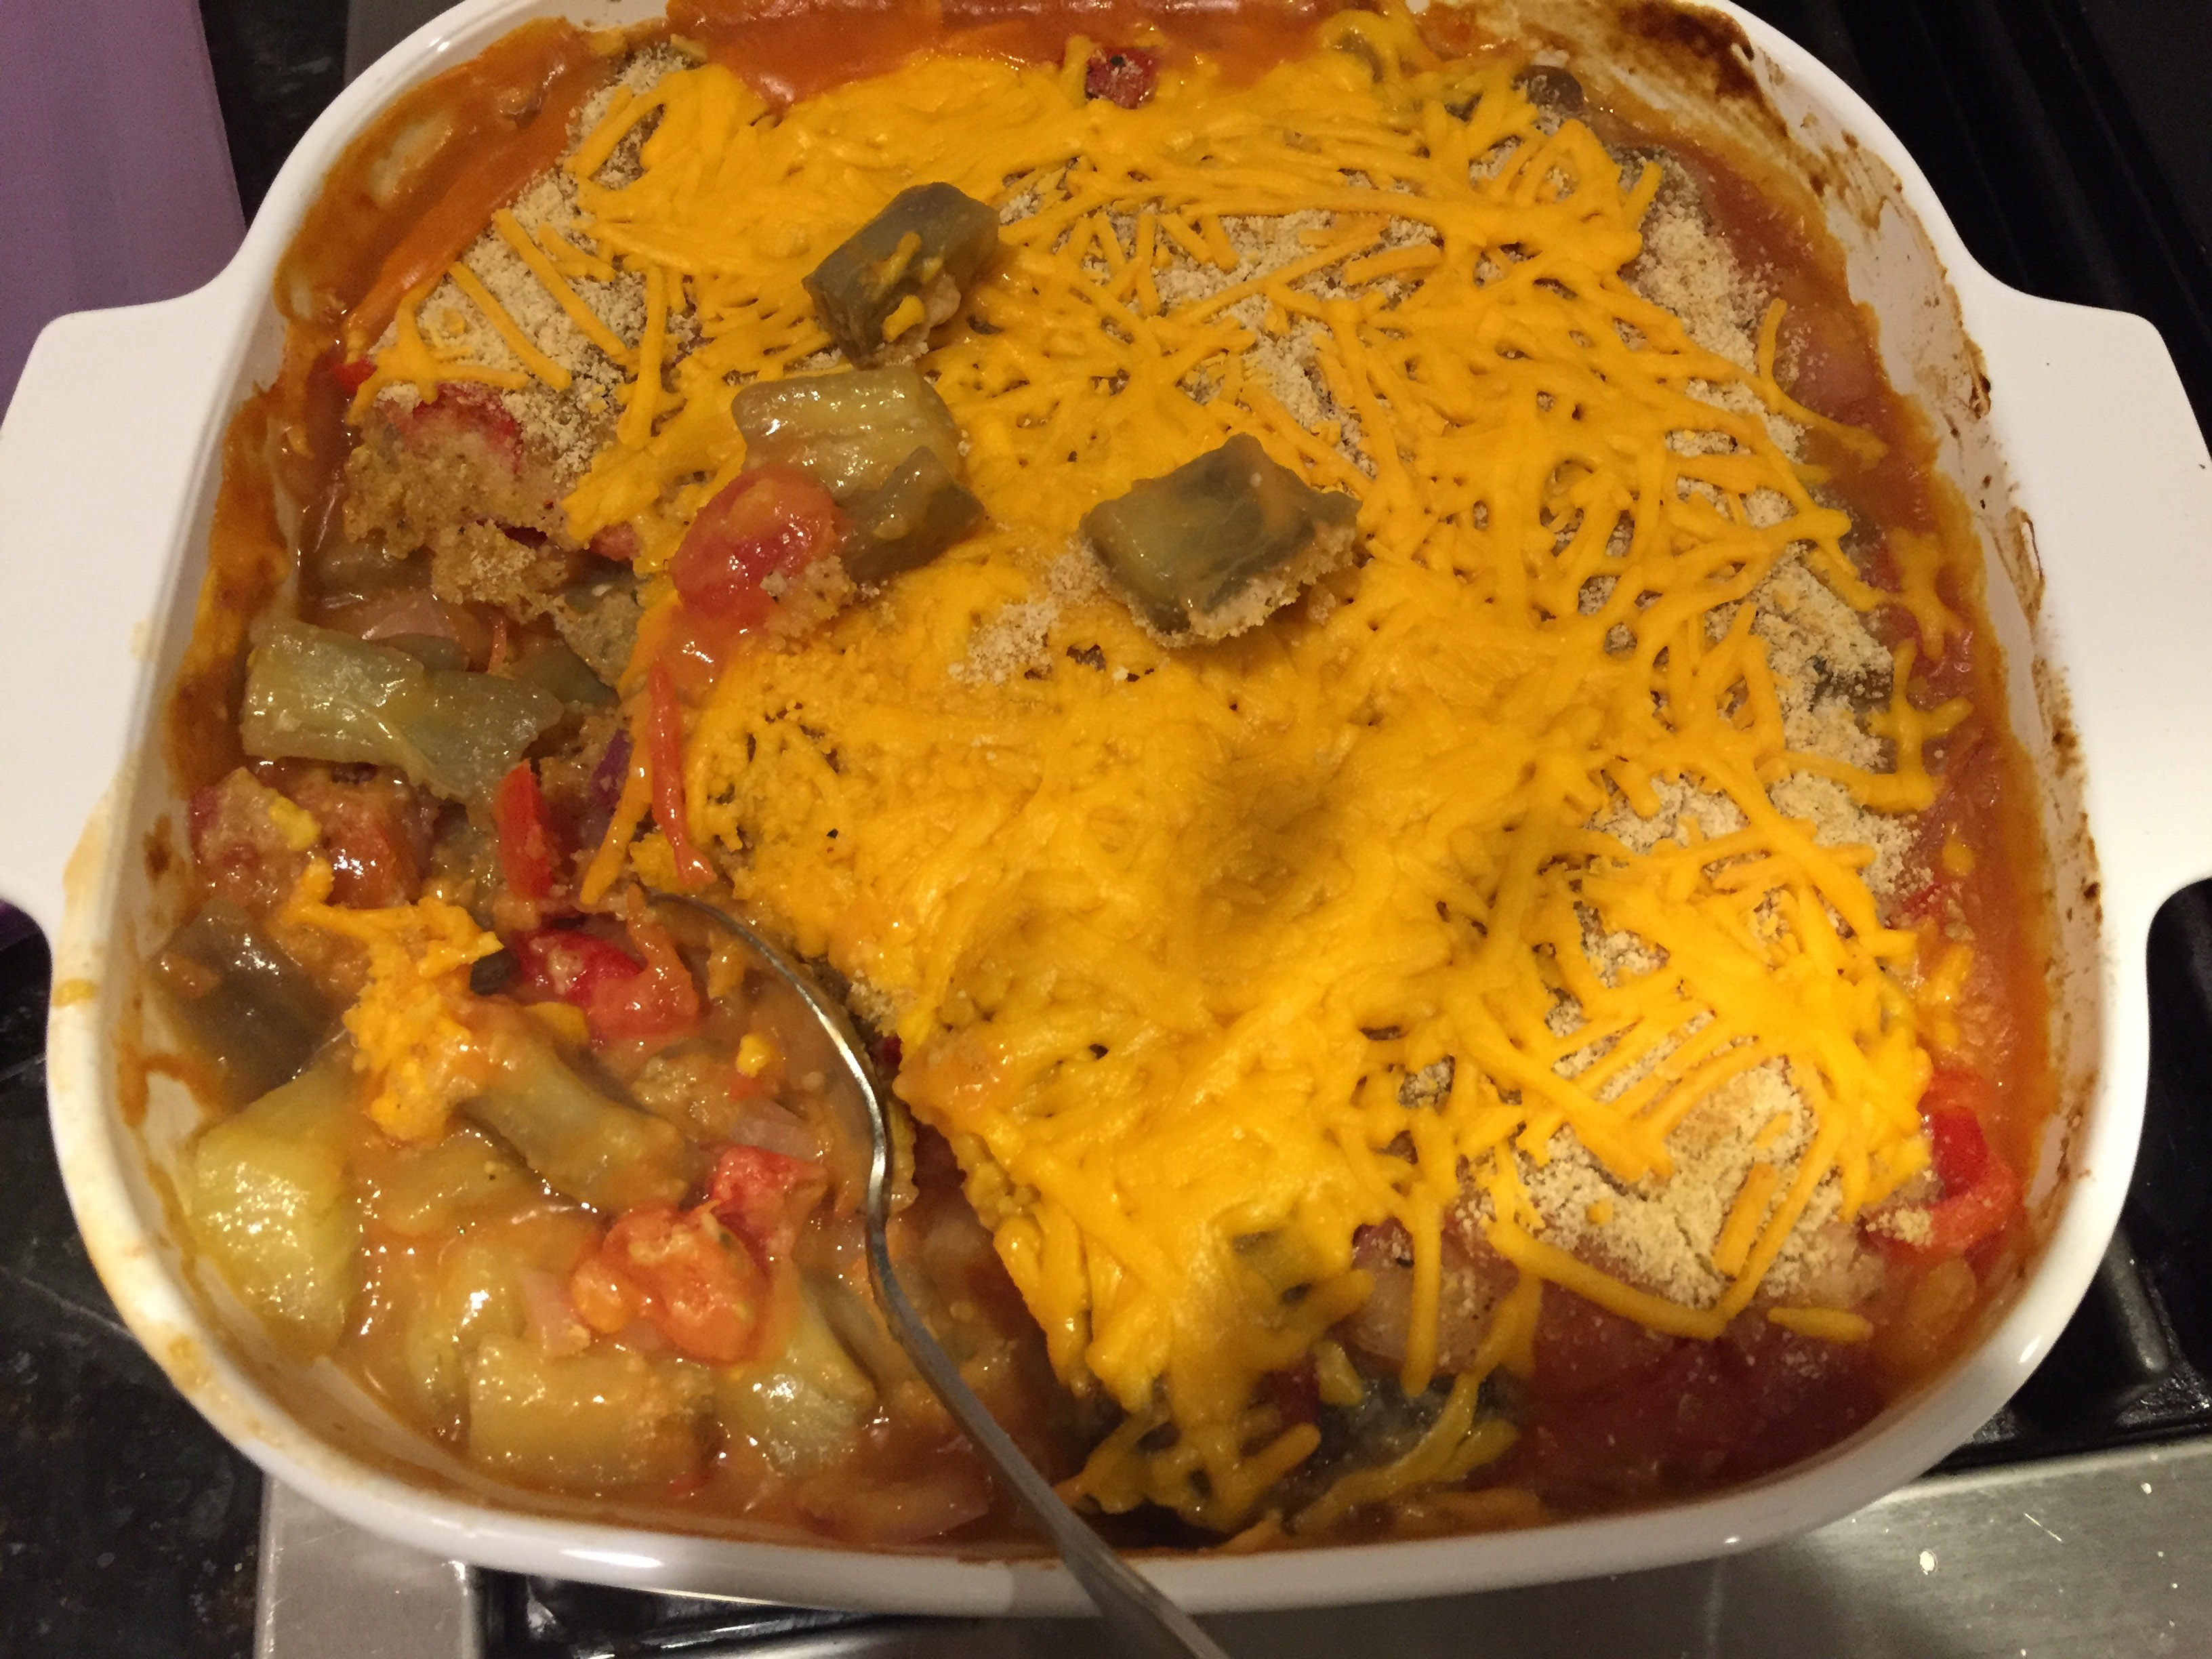 Cheesy Vegetable Casserole with Eggplant